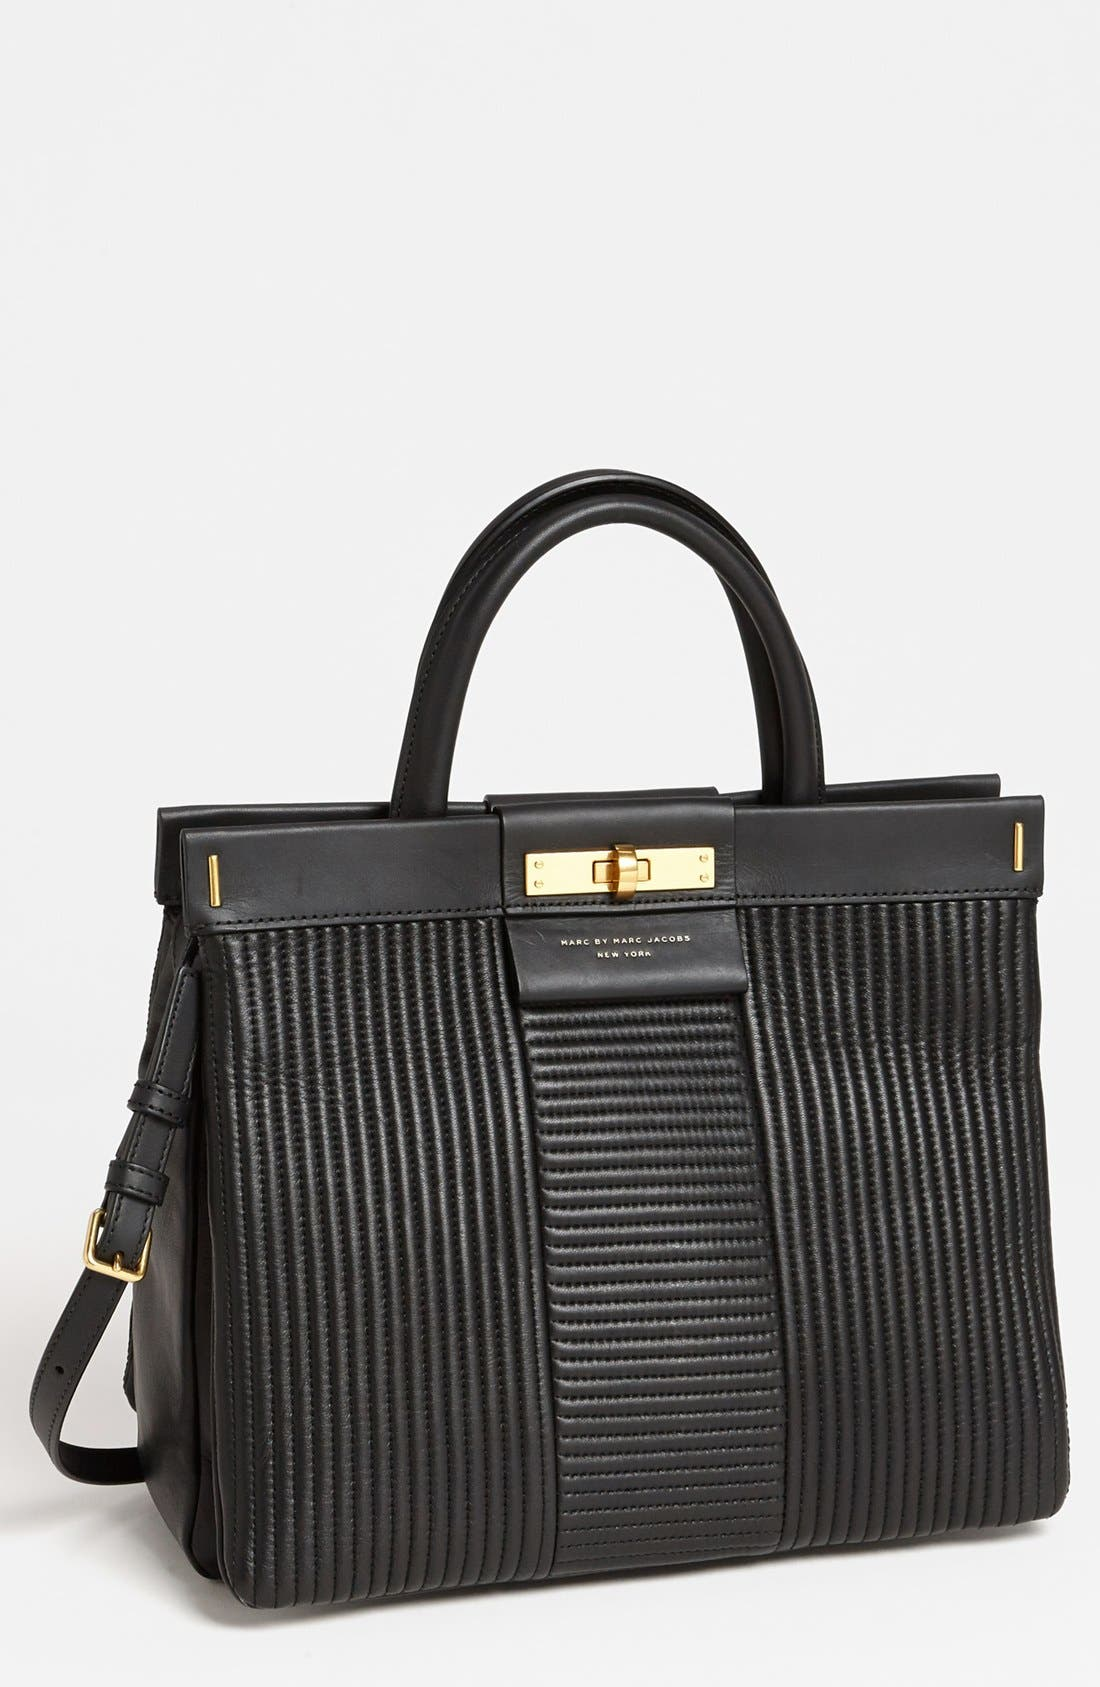 Main Image - MARC BY MARC JACOBS 'East End - Madame Hilli' Quilted Satchel